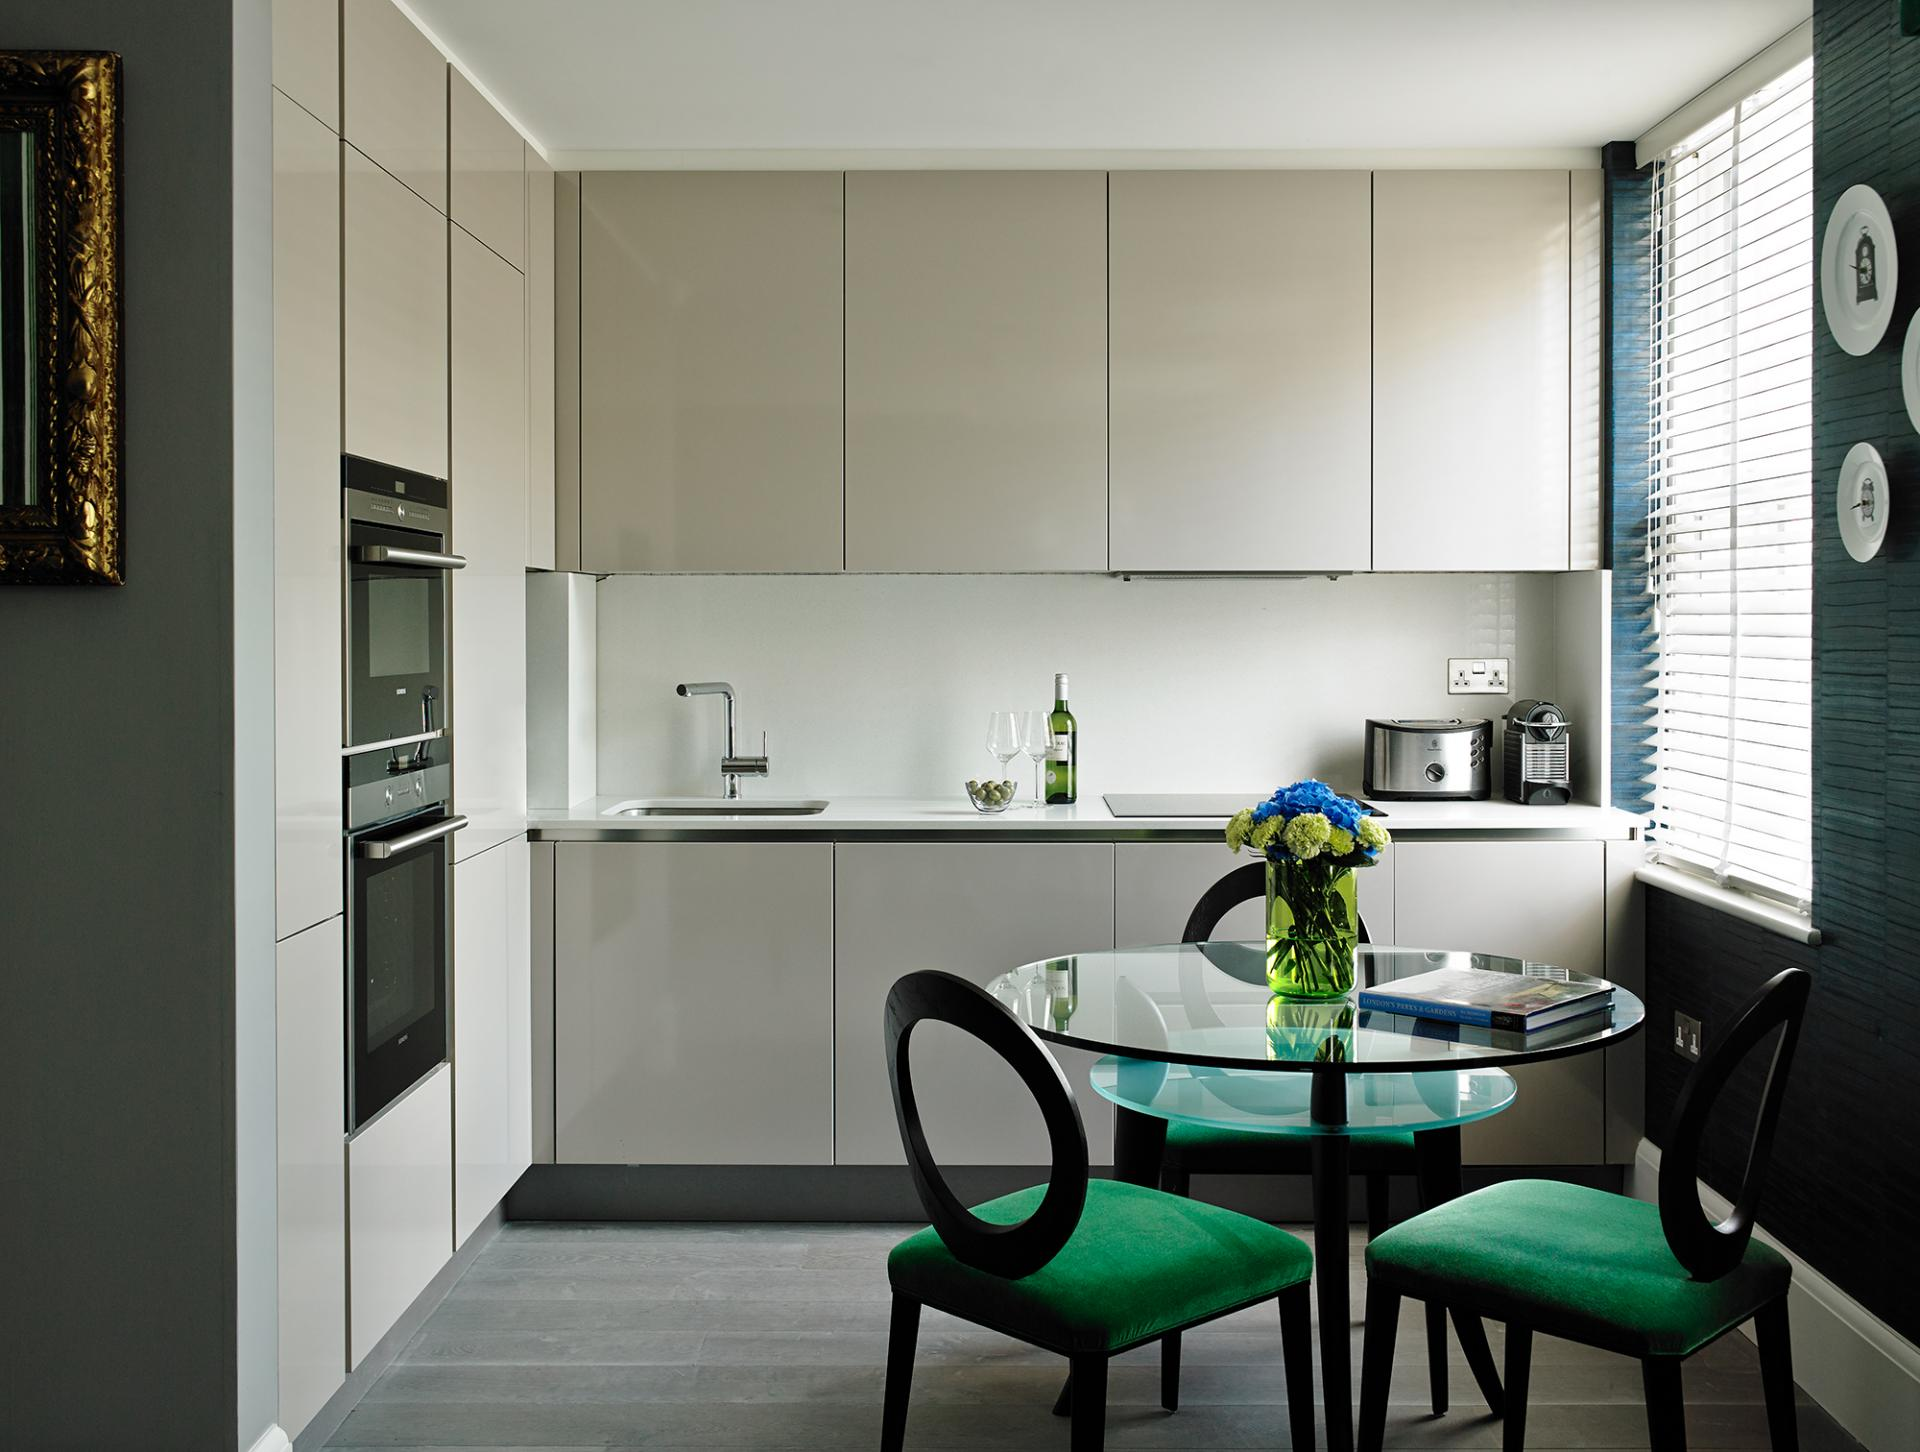 Sleek kitchen at Flemings Apartments